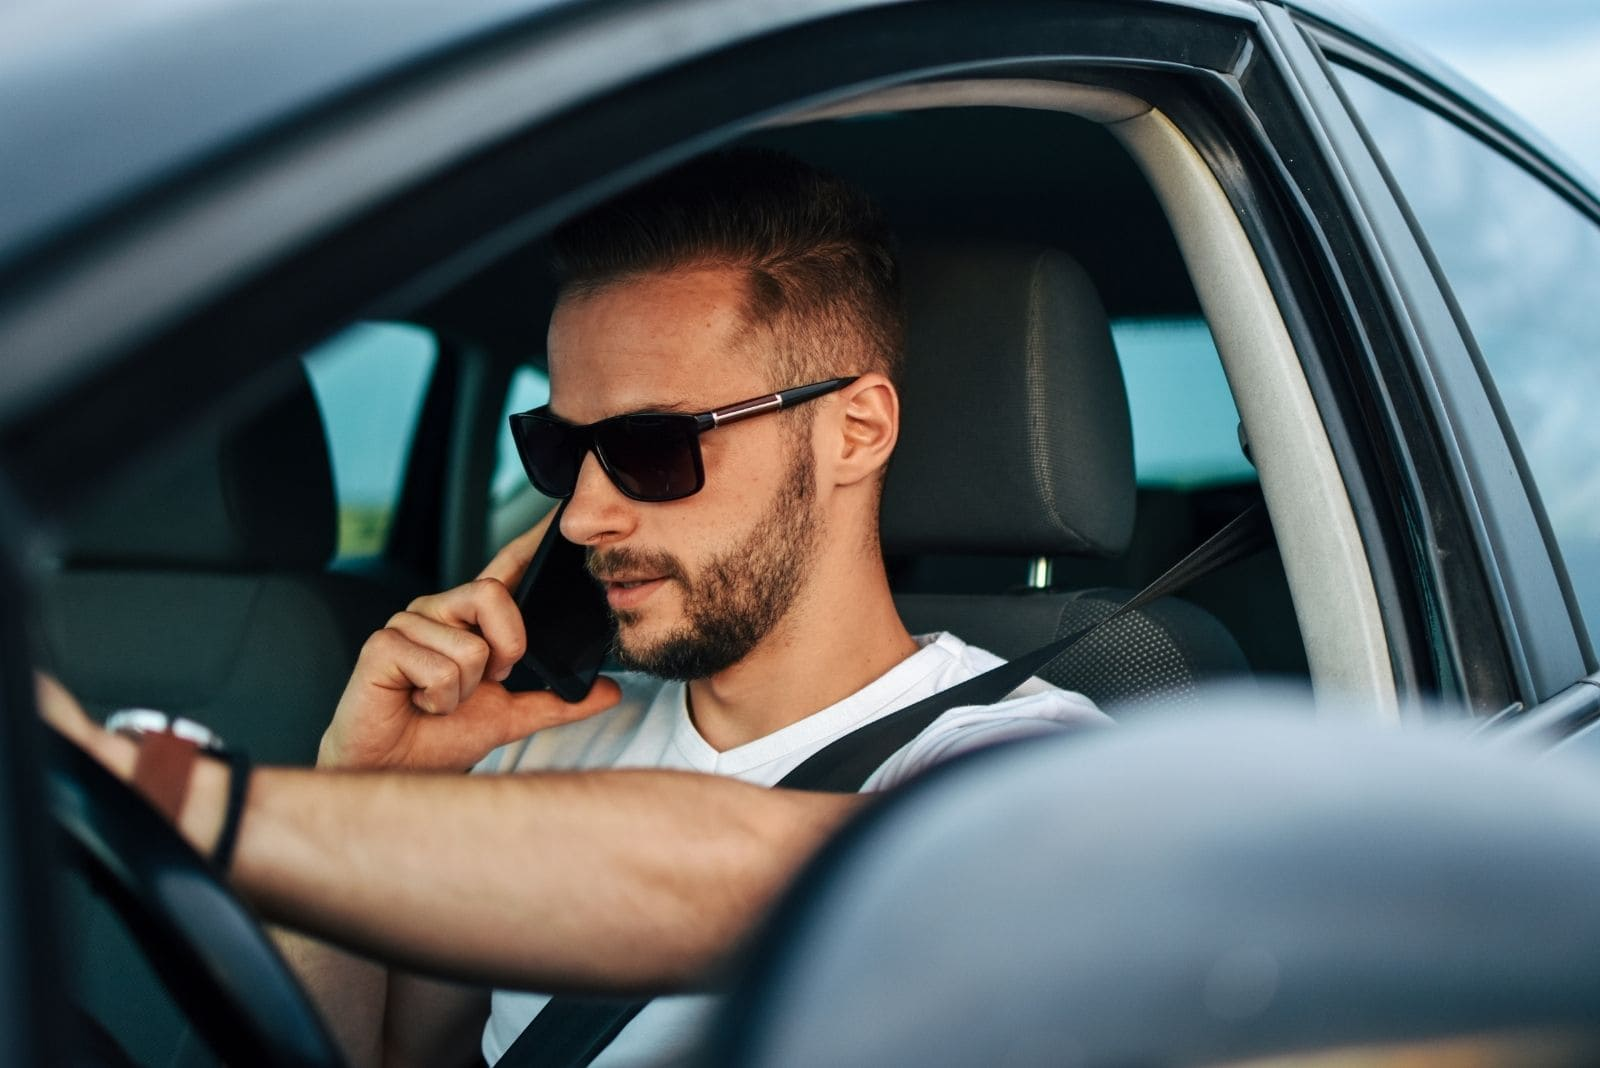 man driving a car answering the phone wearing sunglasses